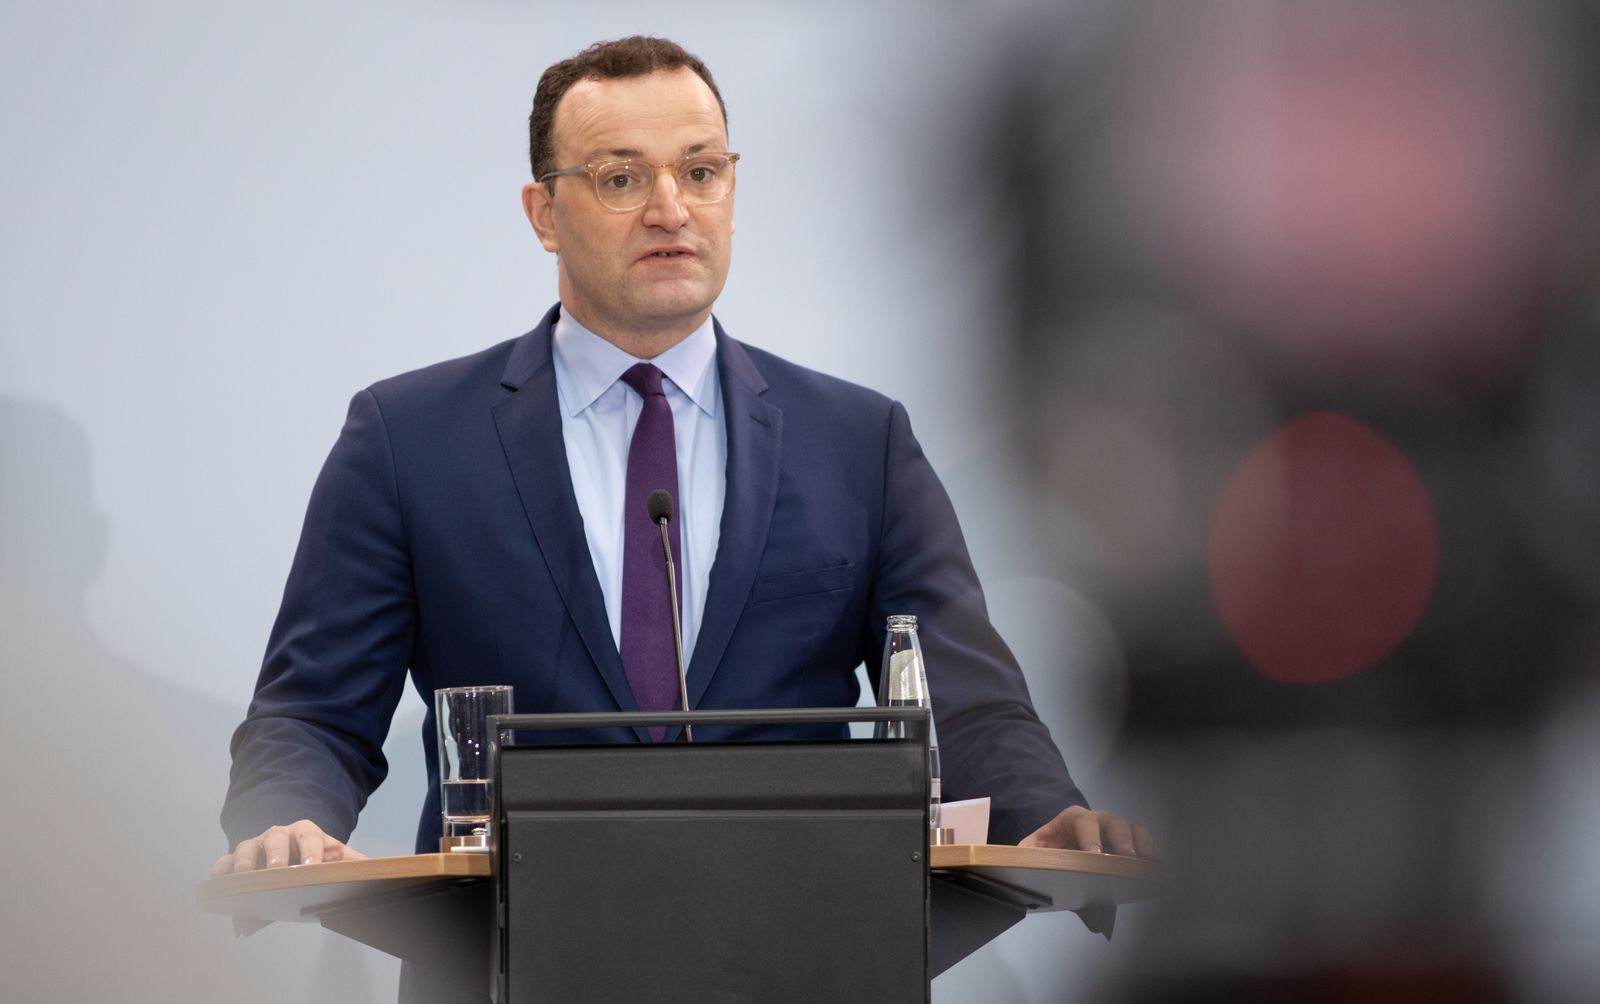 Health Minister Spahn Speaks On Eve Of Vaccinations Launch